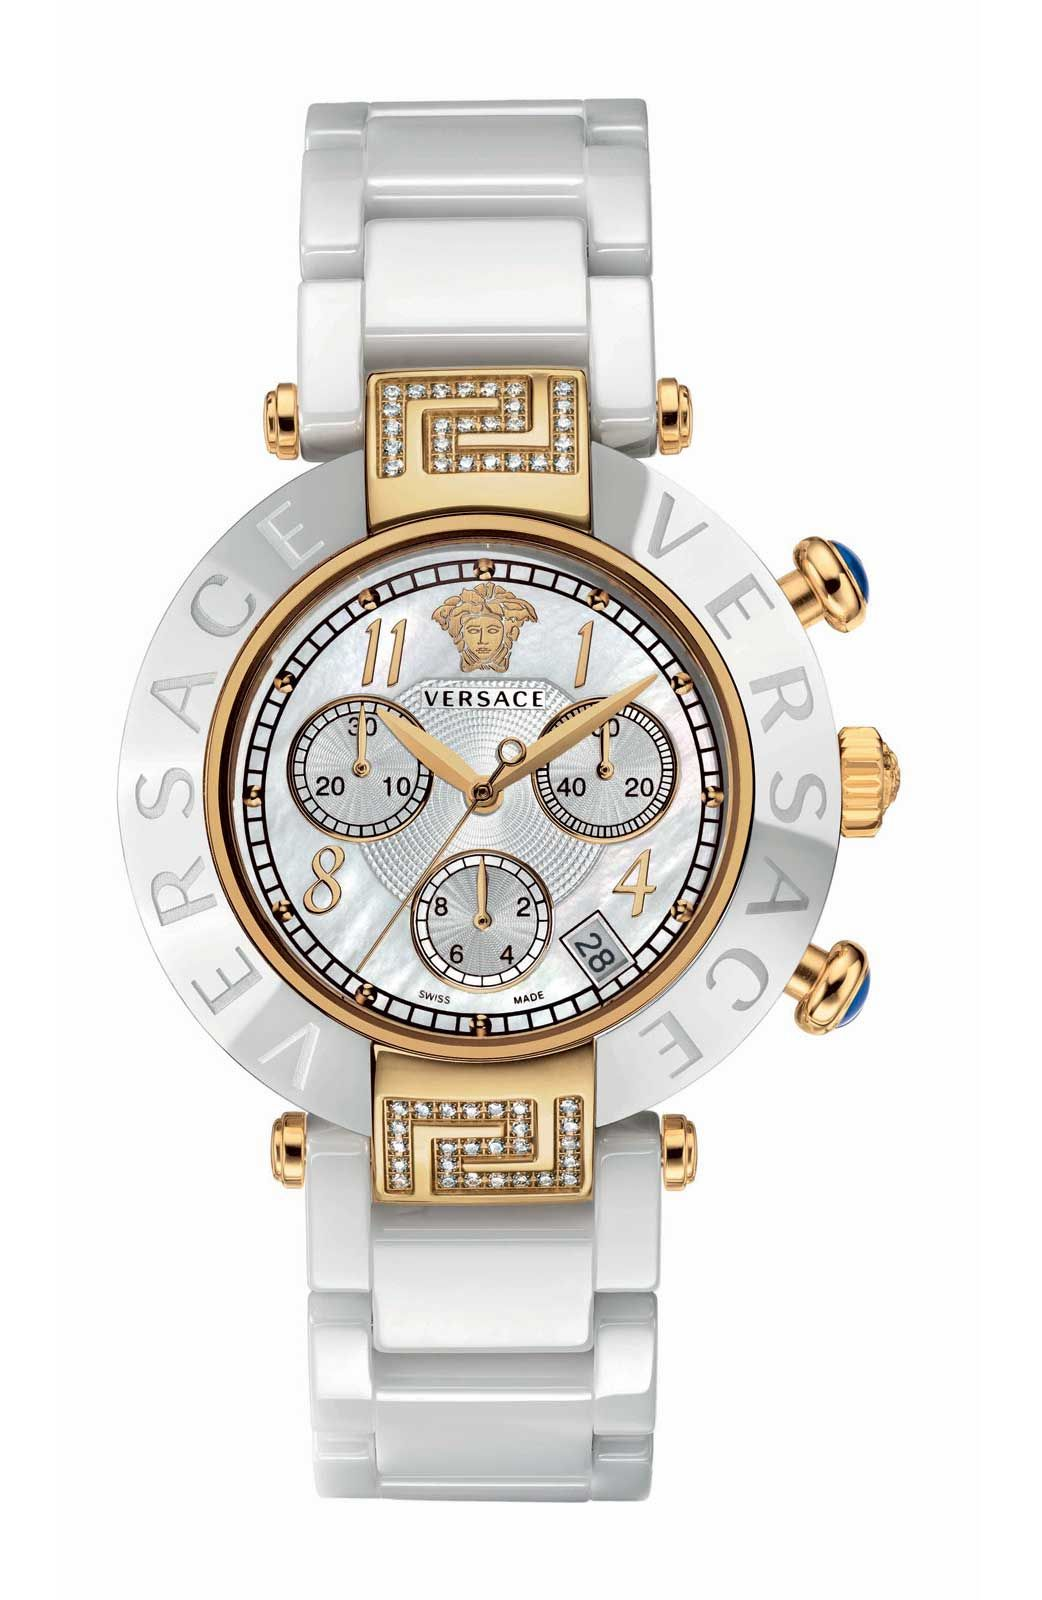 d3adc49fc0 white and gold versace | wants | Versace, Fashion watches, Jewelry ...